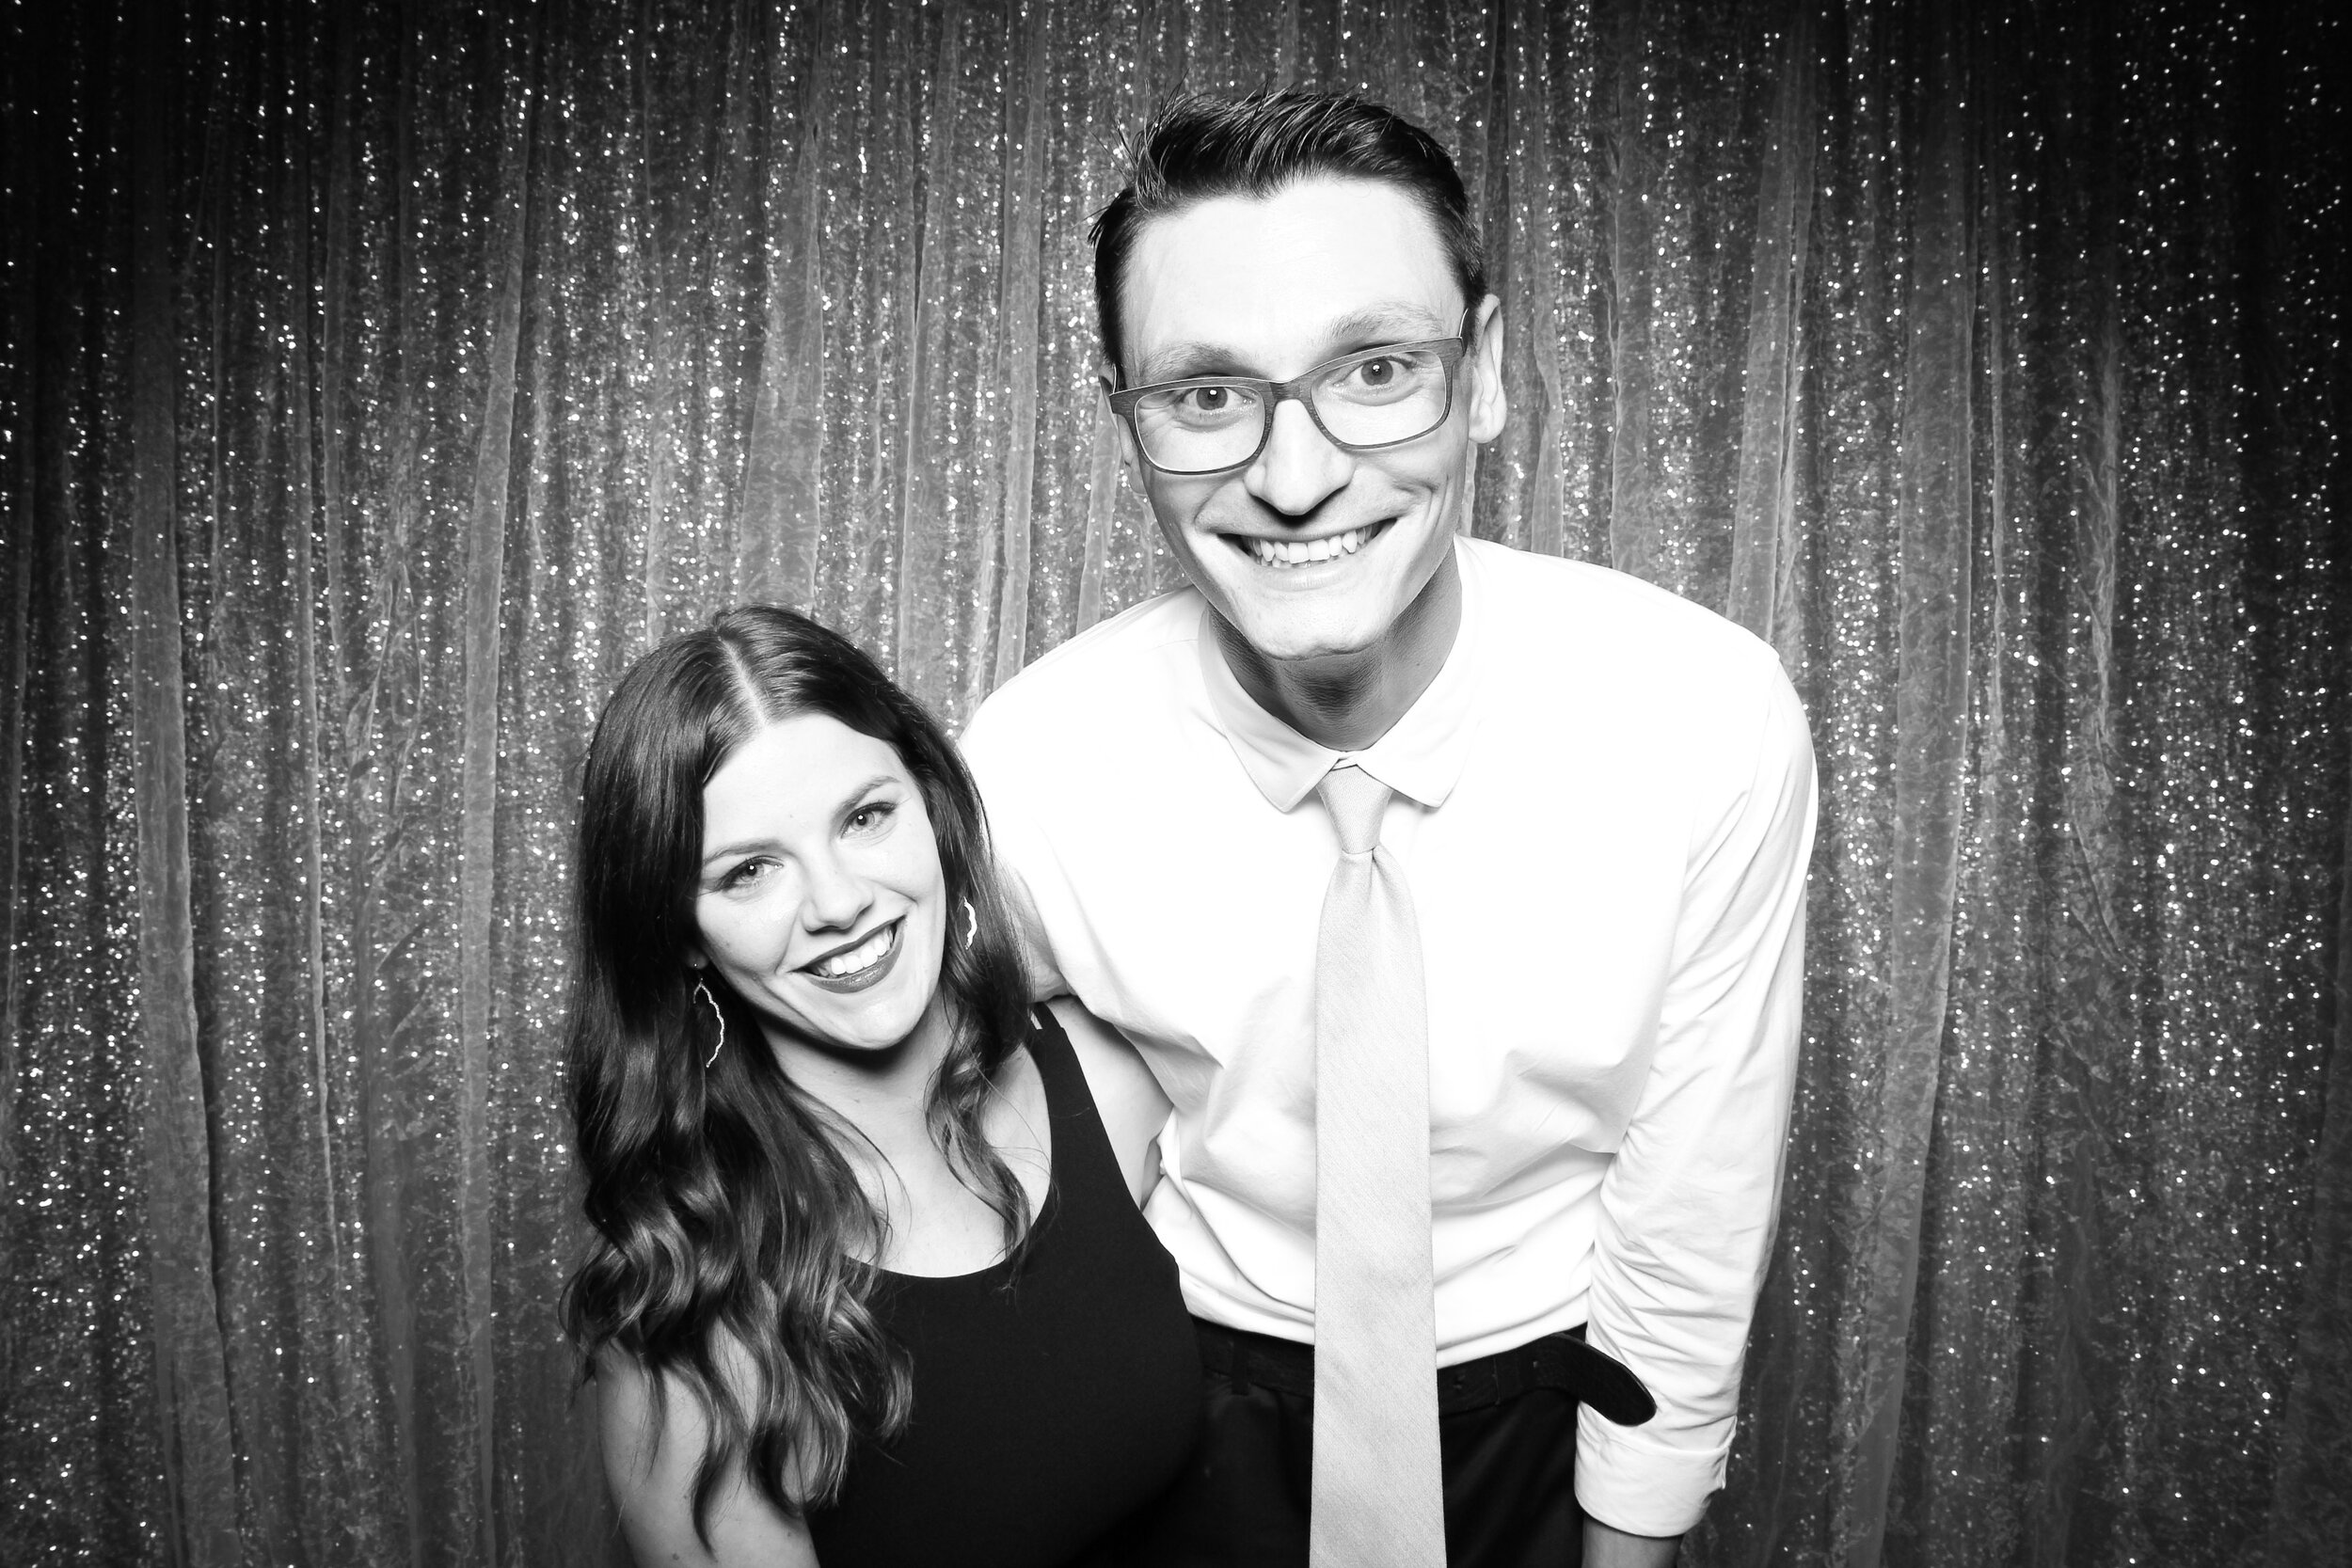 Chicago_Vintage_Wedding_Photobooth_Country_Club_09.jpg